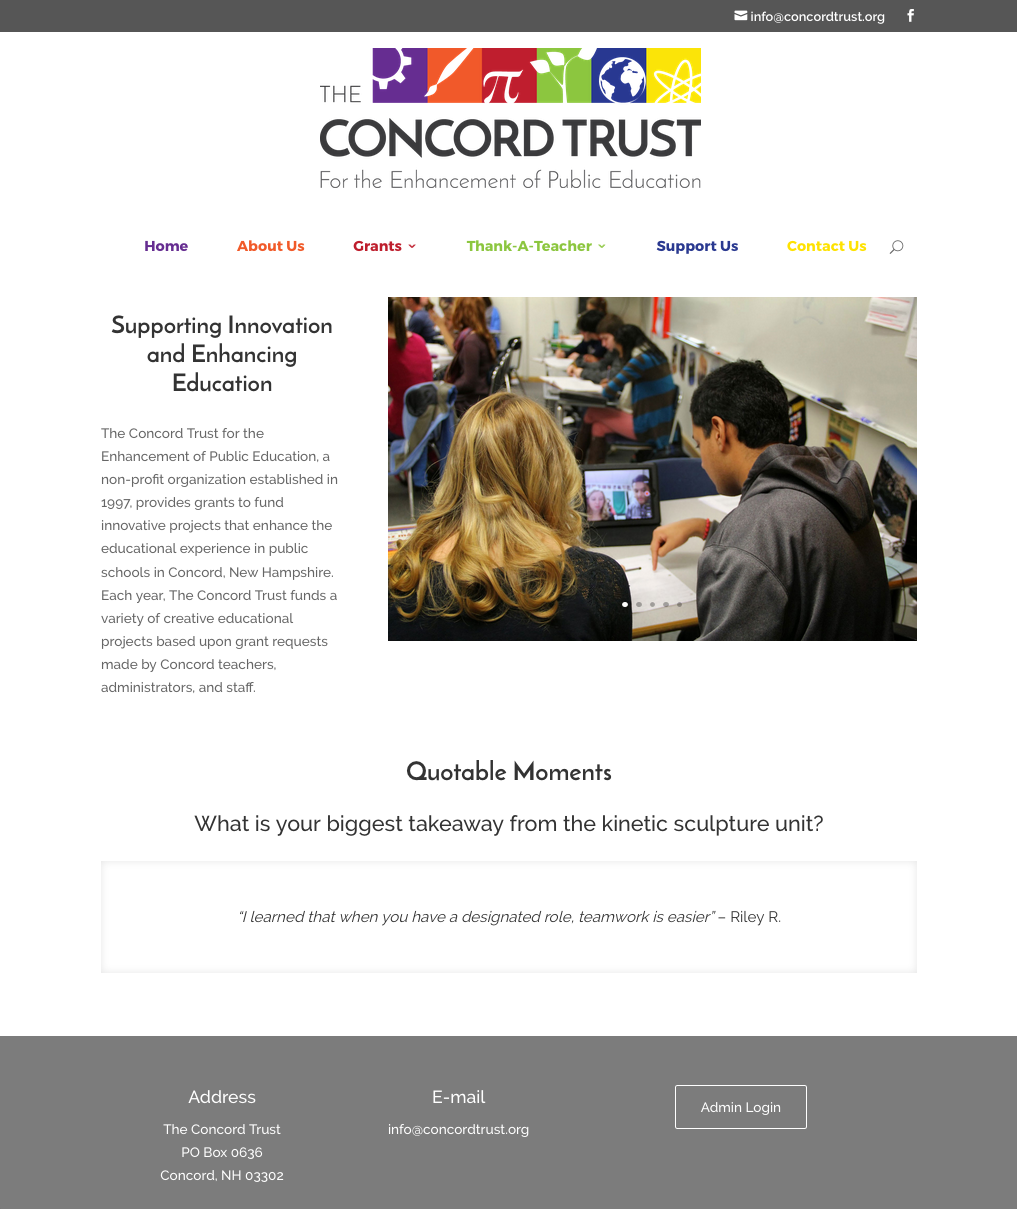 The Concord Trust Website